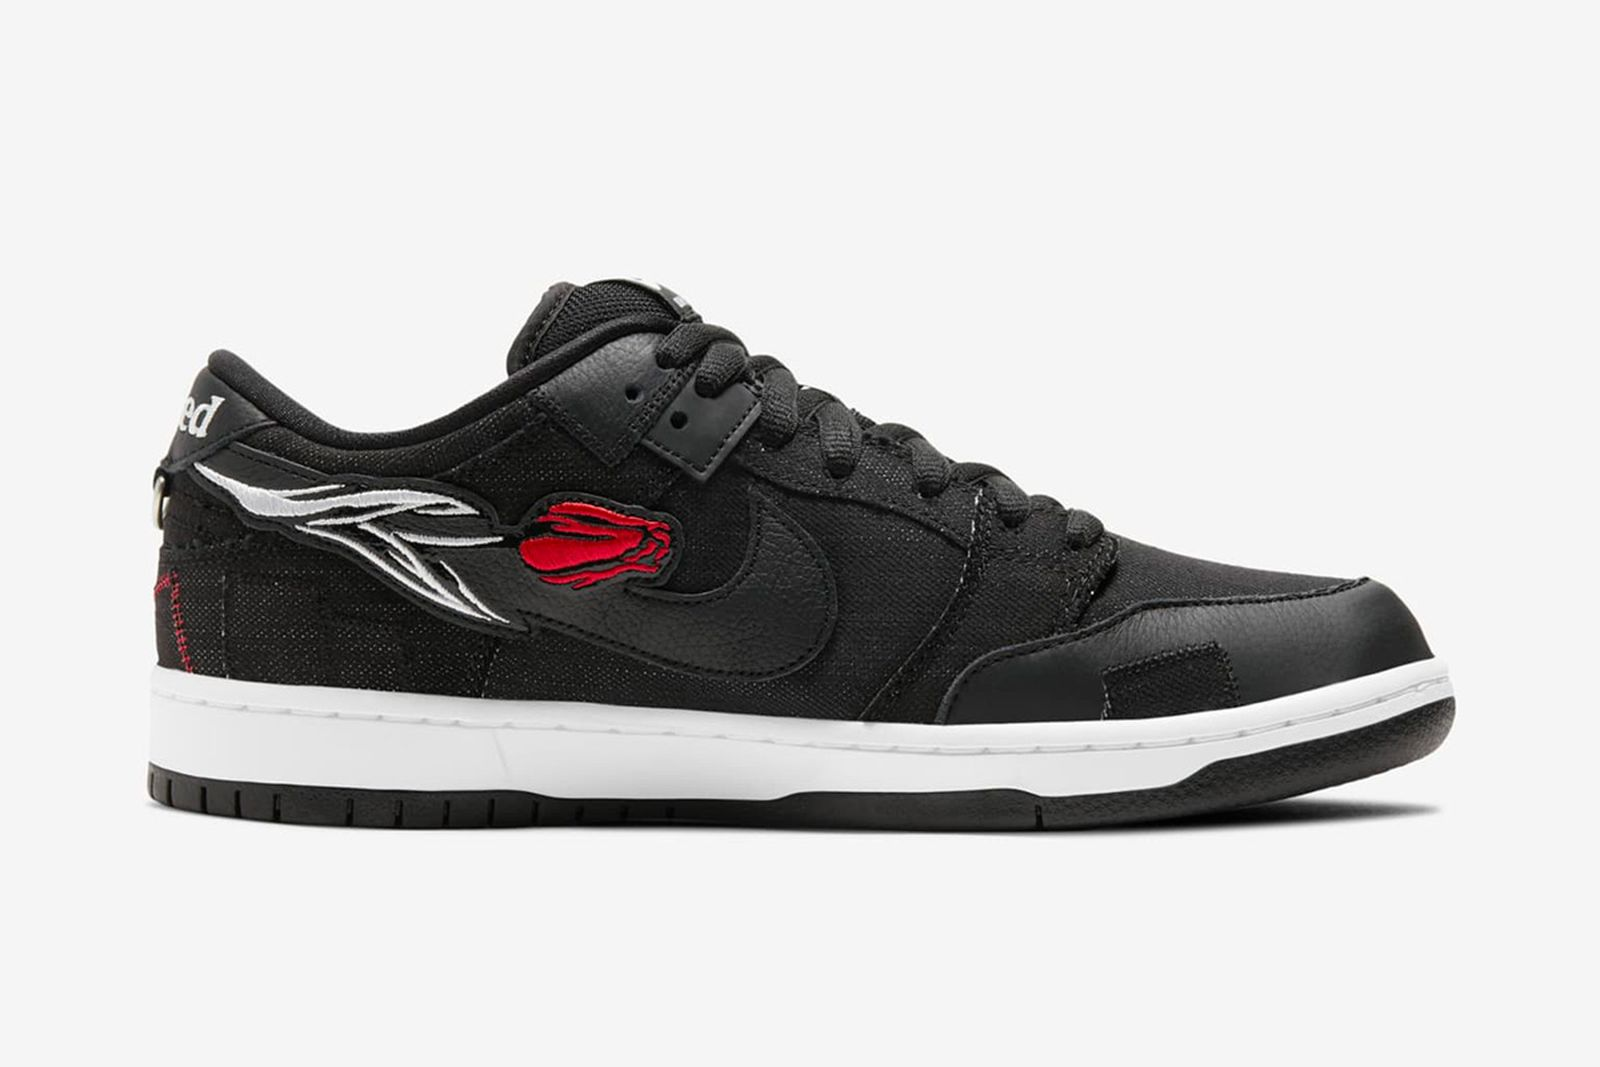 verdy-nike-sb-dunk-low-wasted-youth-release-date-price-05